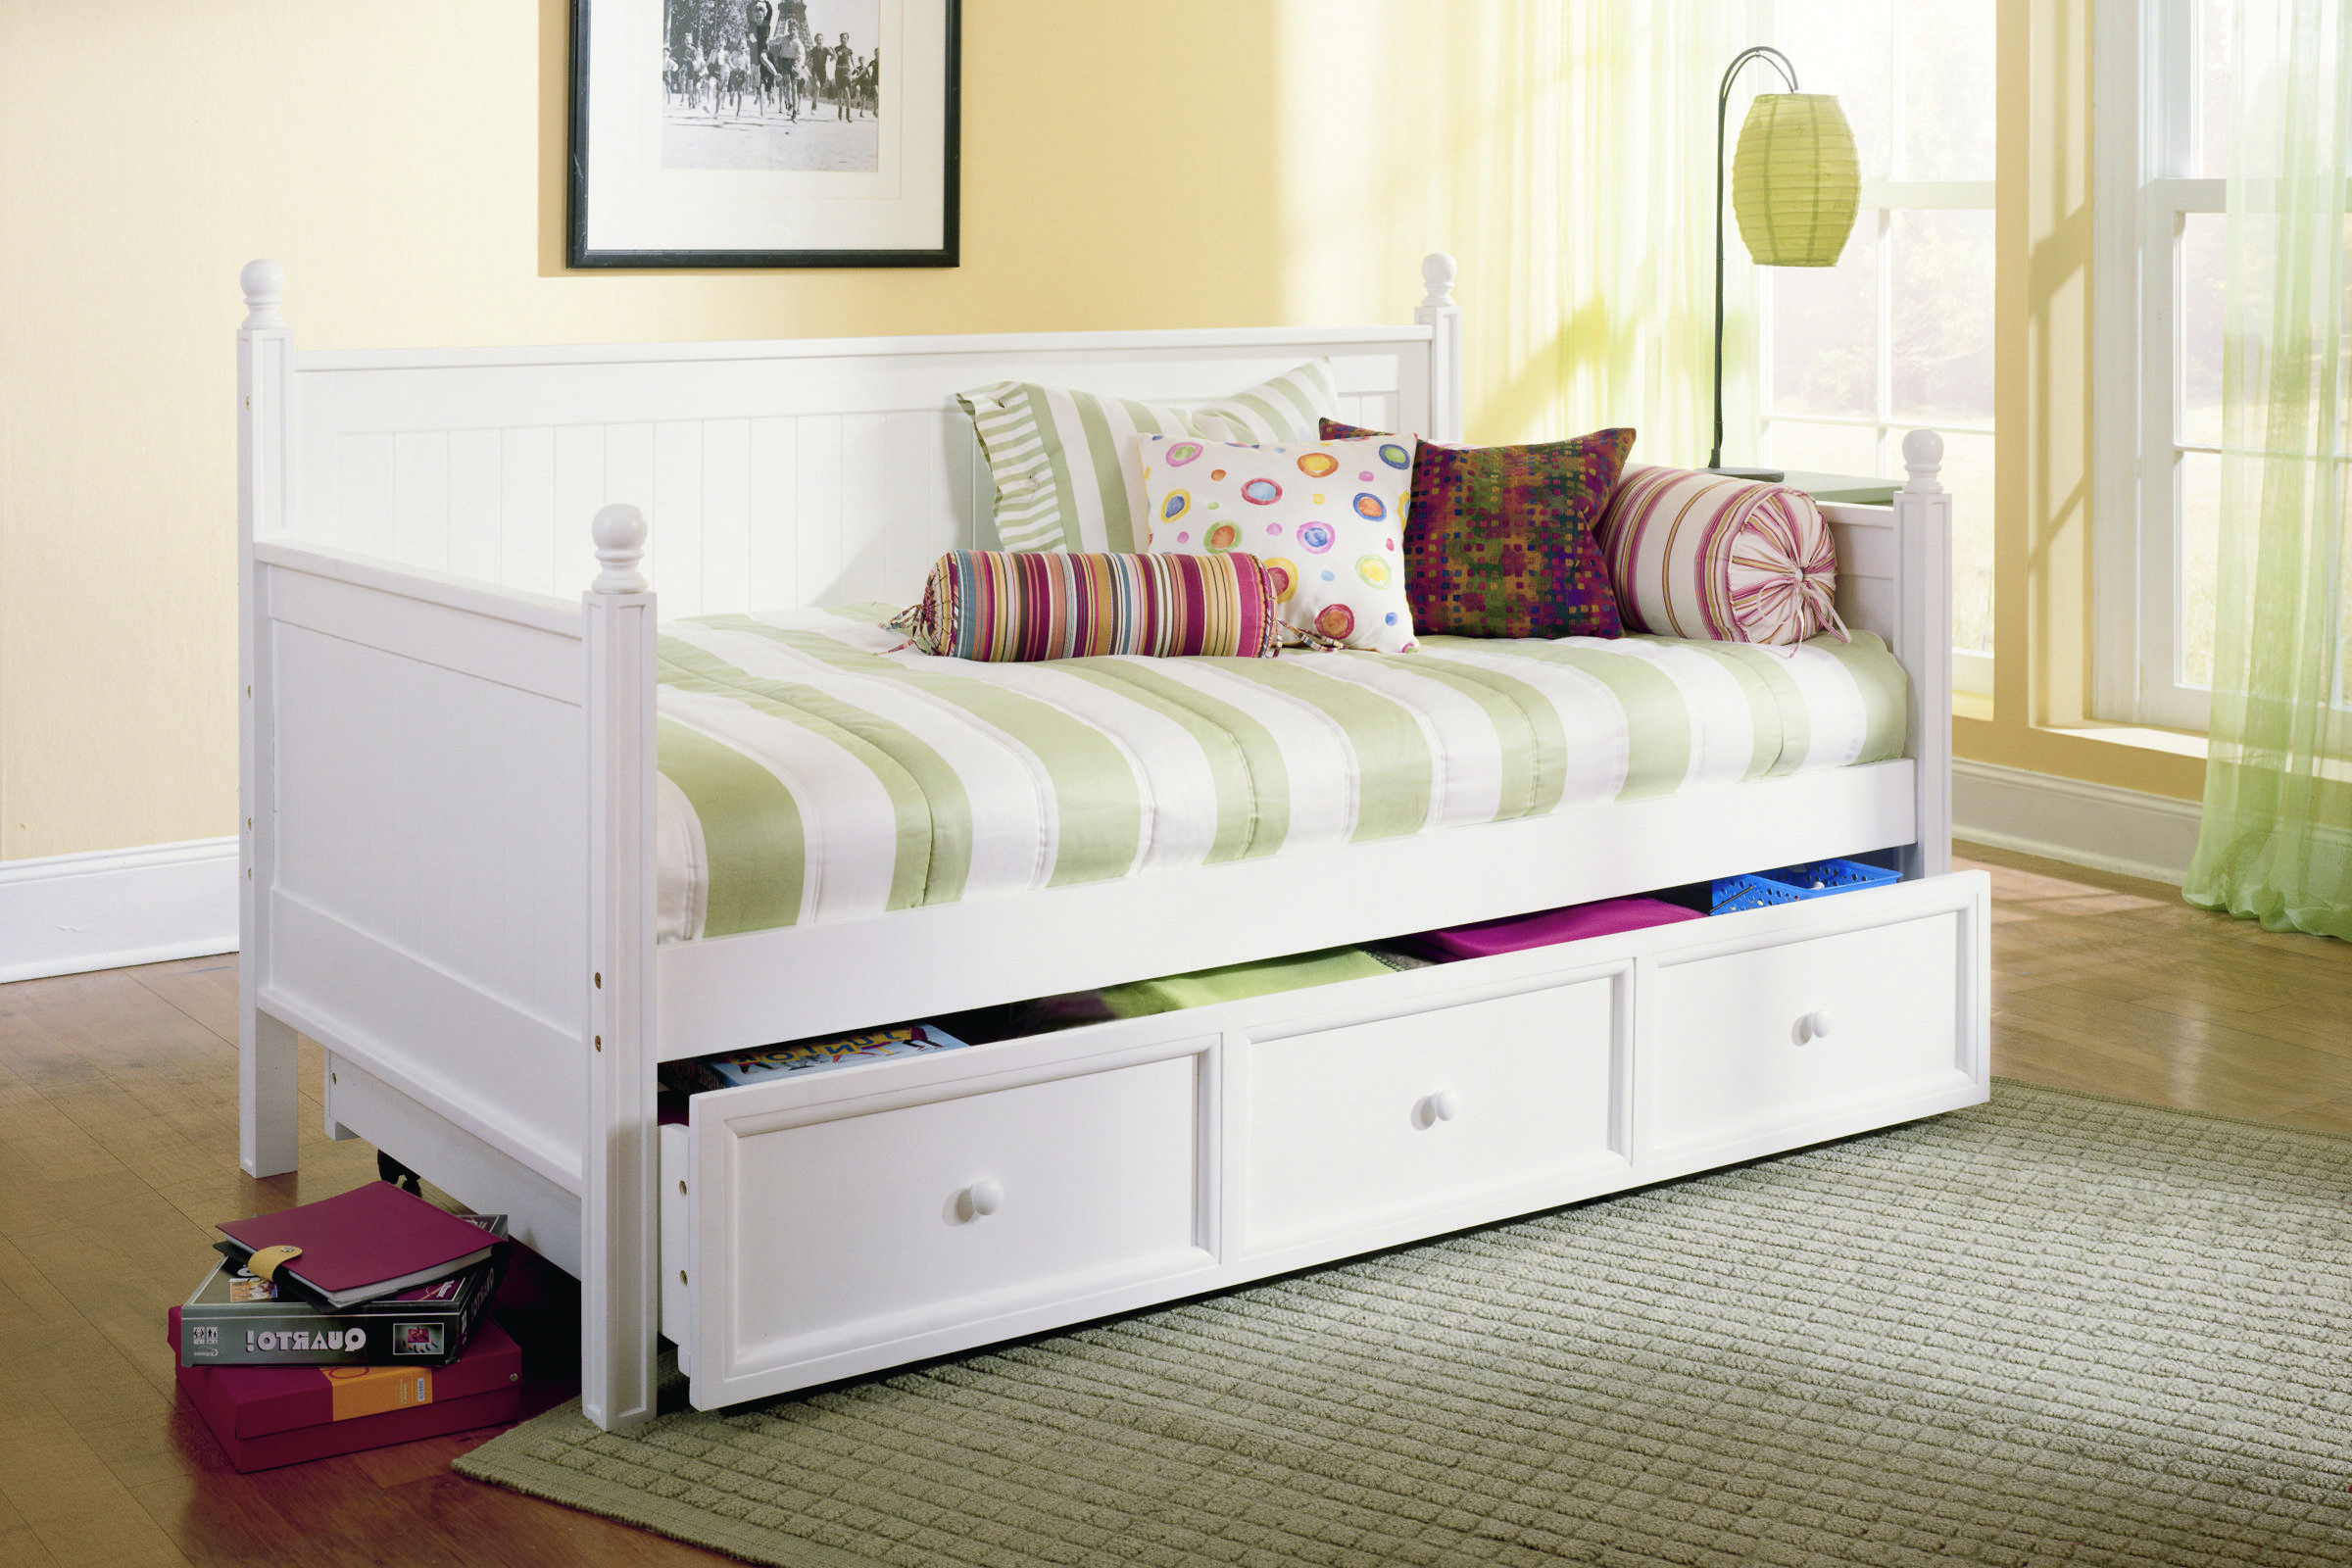 Daybed with pop up trundle ikea casey daybed by fashion bed group  beautiful finishes and solid